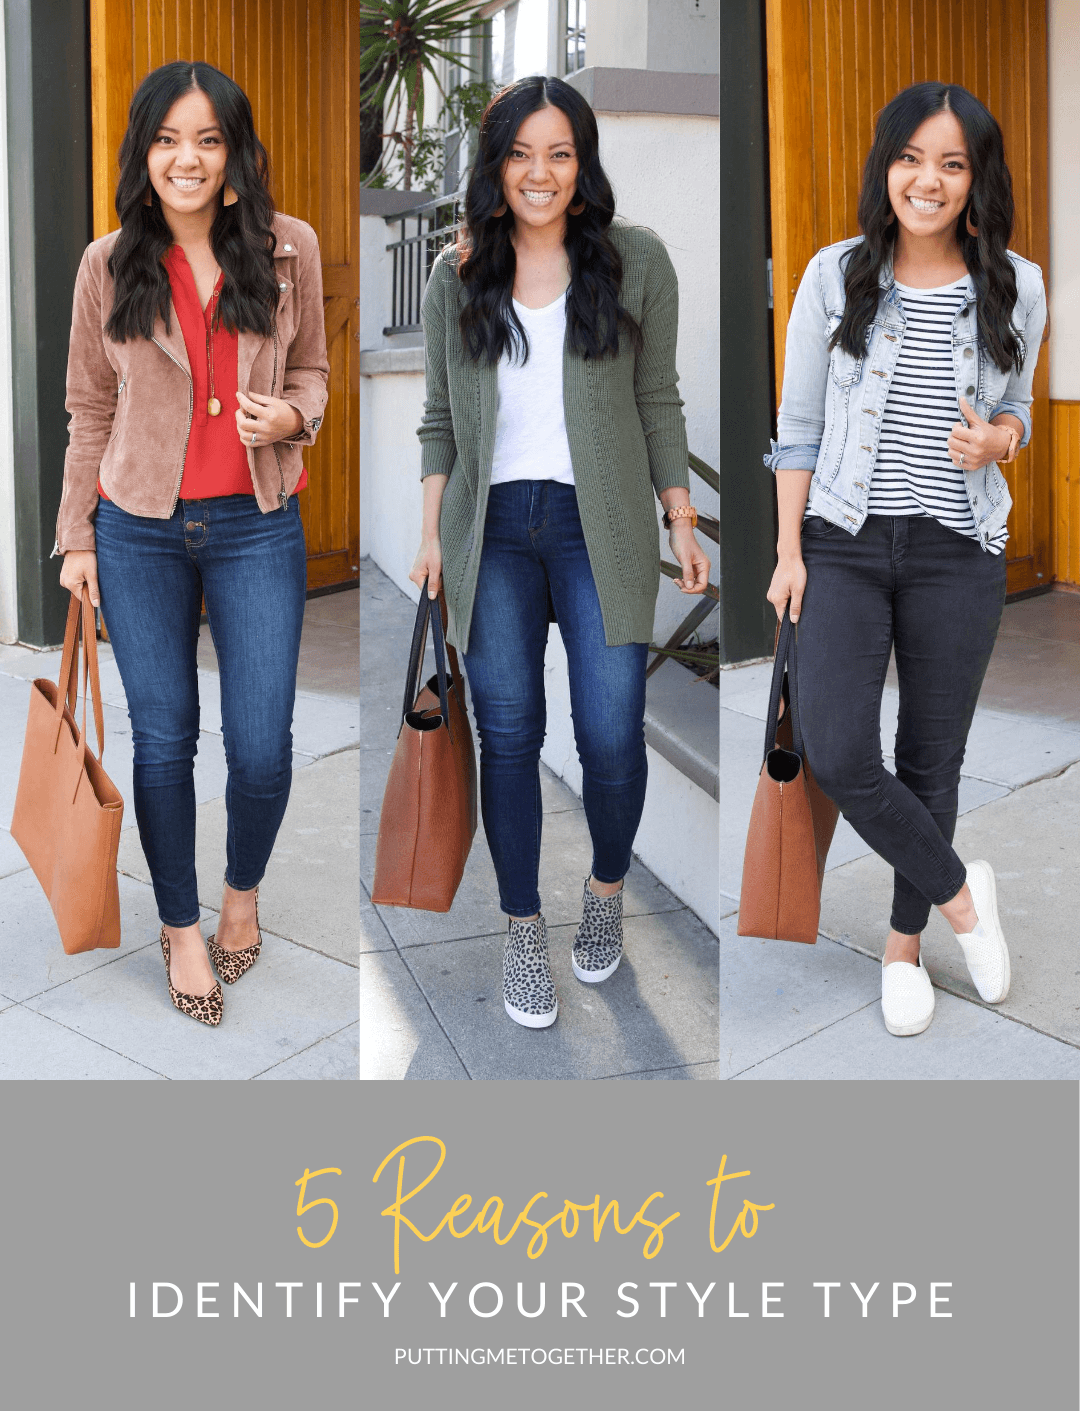 5 Reasons to Identify Your Style Type